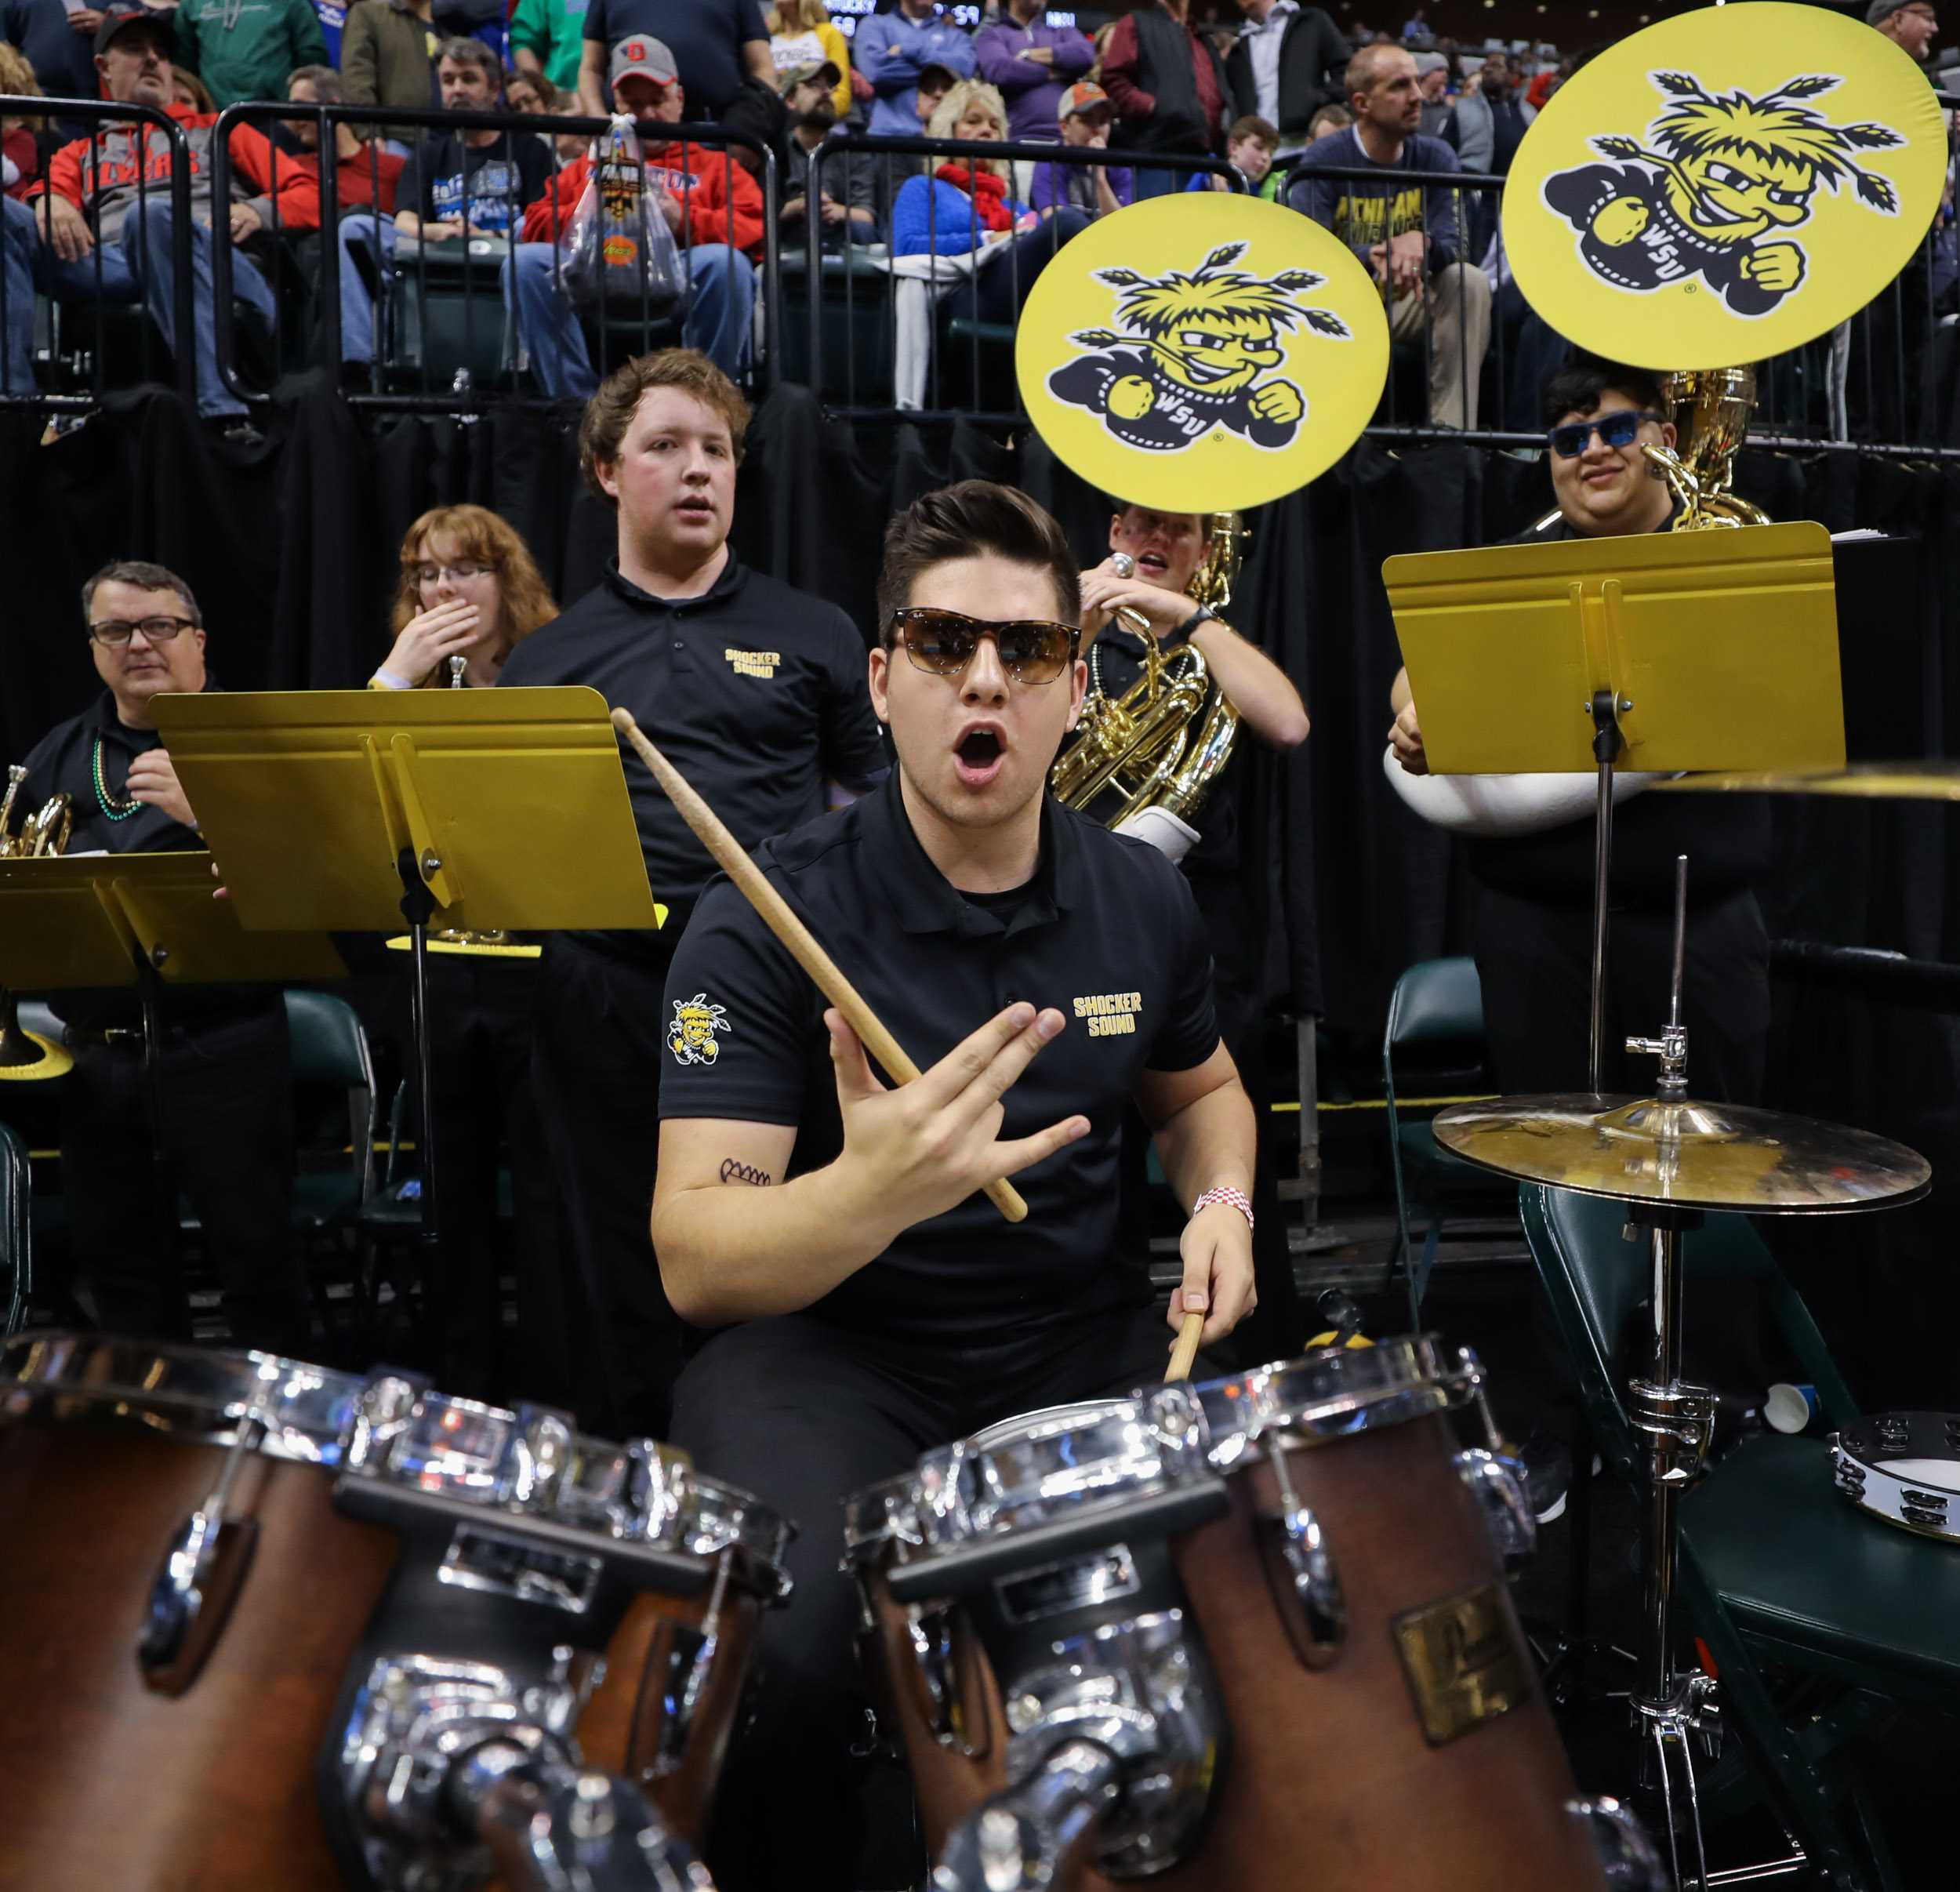 A member of the Wichita State band celebrates the Shockers' 64 – 58 victory over the Dayton Flyer  at Bankers Life Fieldhouse in Indianapolis. (Mar. 17, 2017)